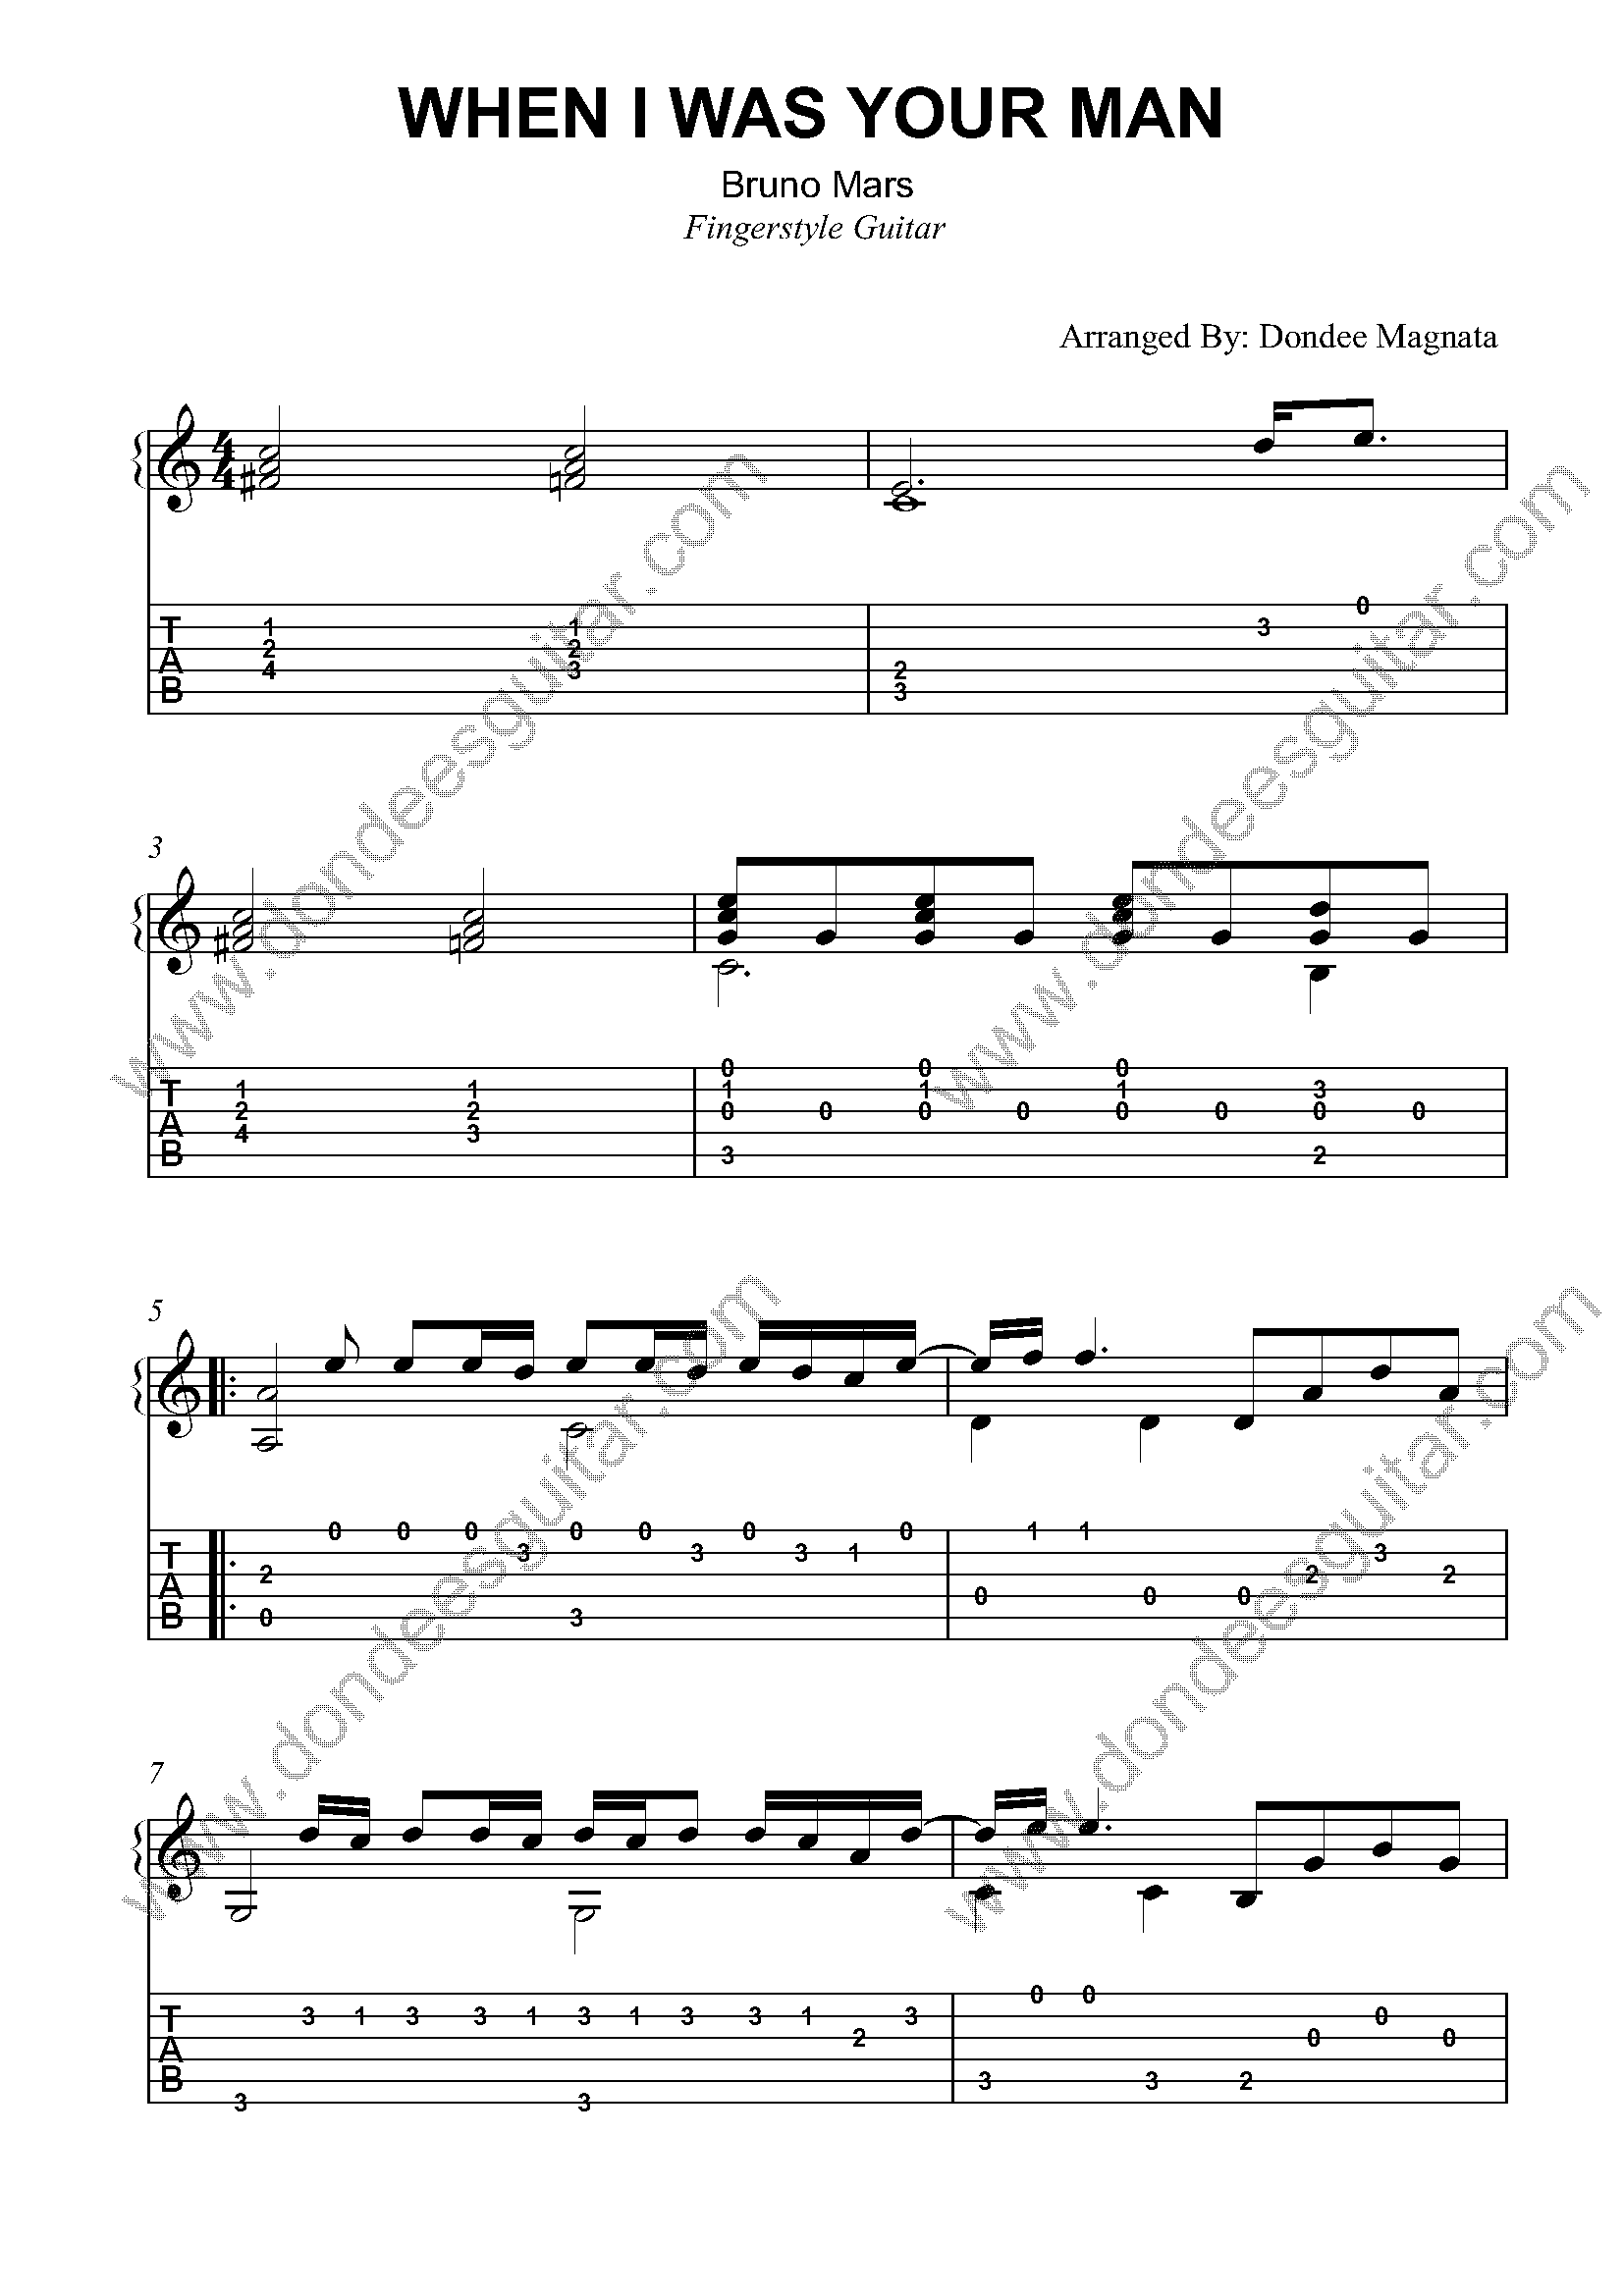 When I Was Your Man Fingerstyle Tabs